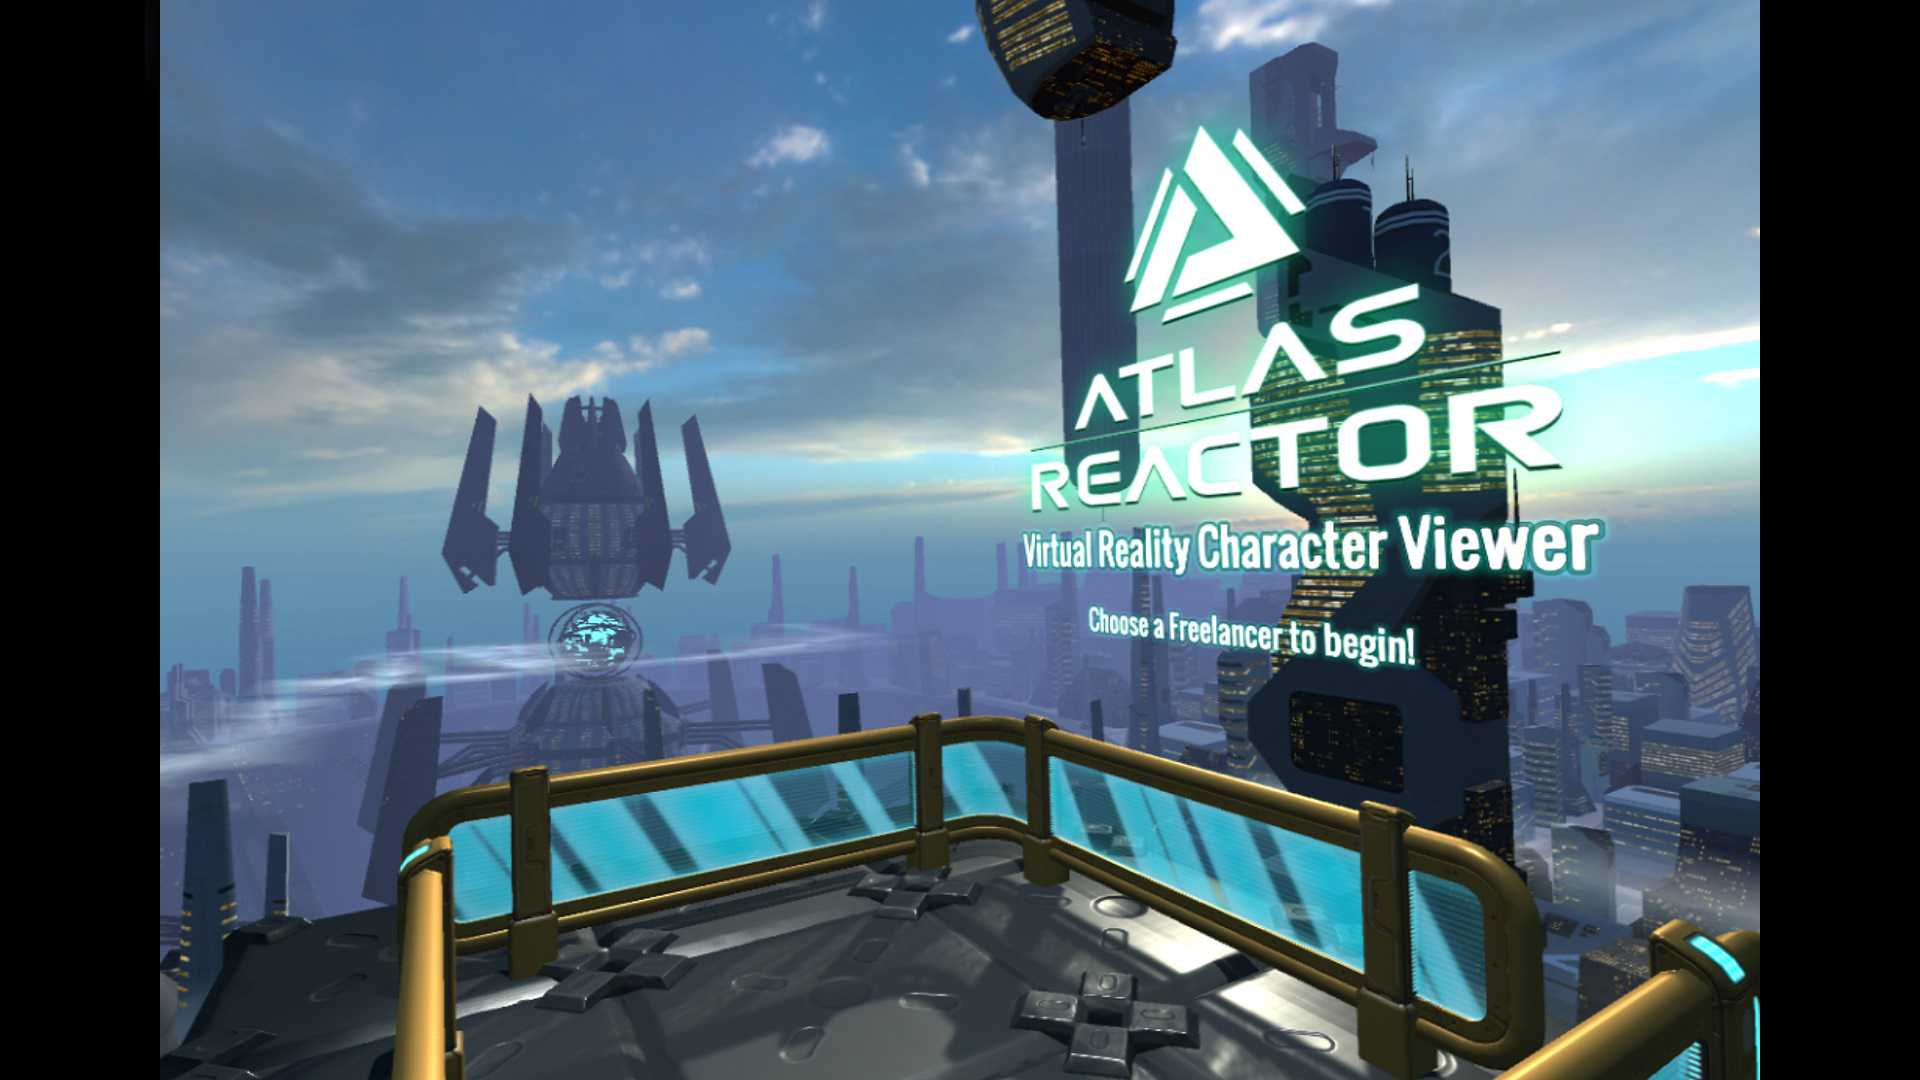 Atlas Reactor VR Character Viewer